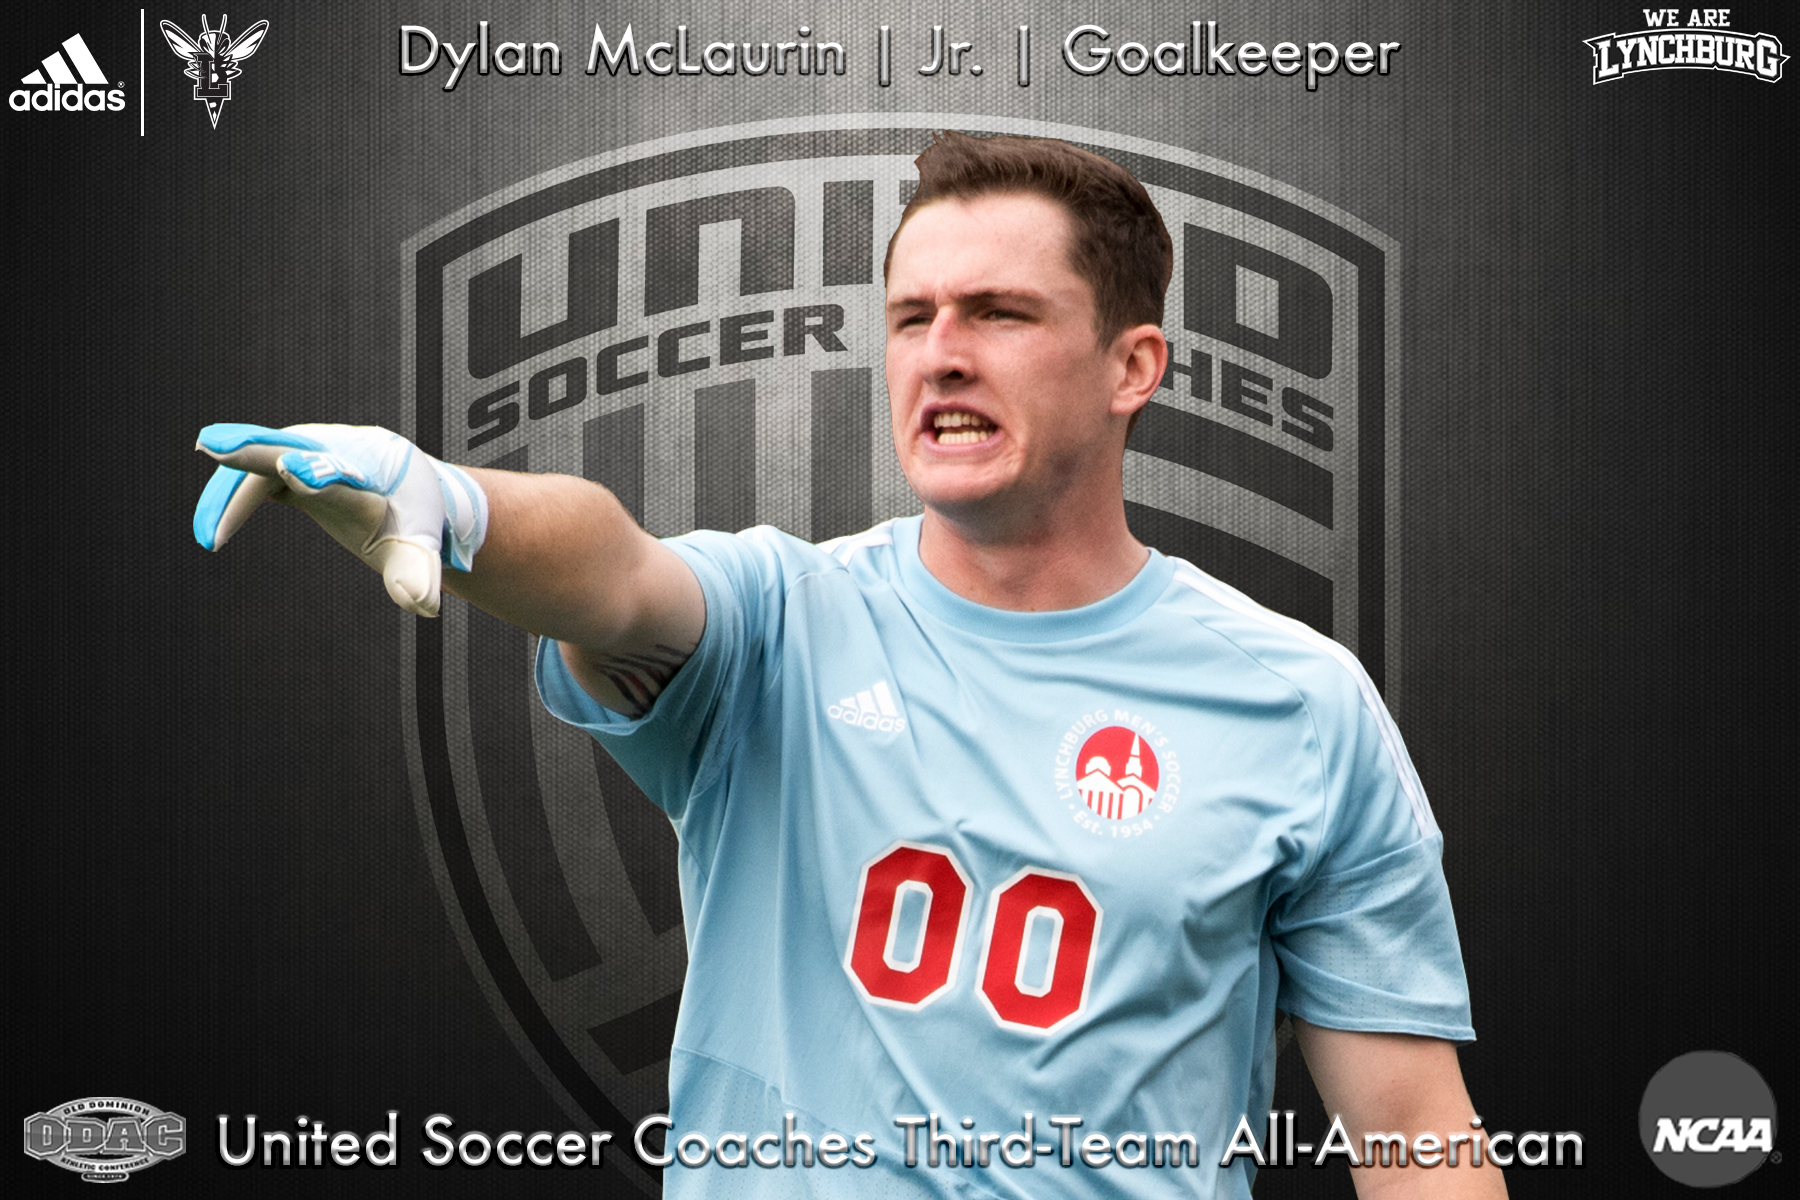 Dylan McLaurin points to direct the defense. Graphic: Dylan McLaruin, junior, goalkeeper; United Soccer Coaches Third-Team All-American